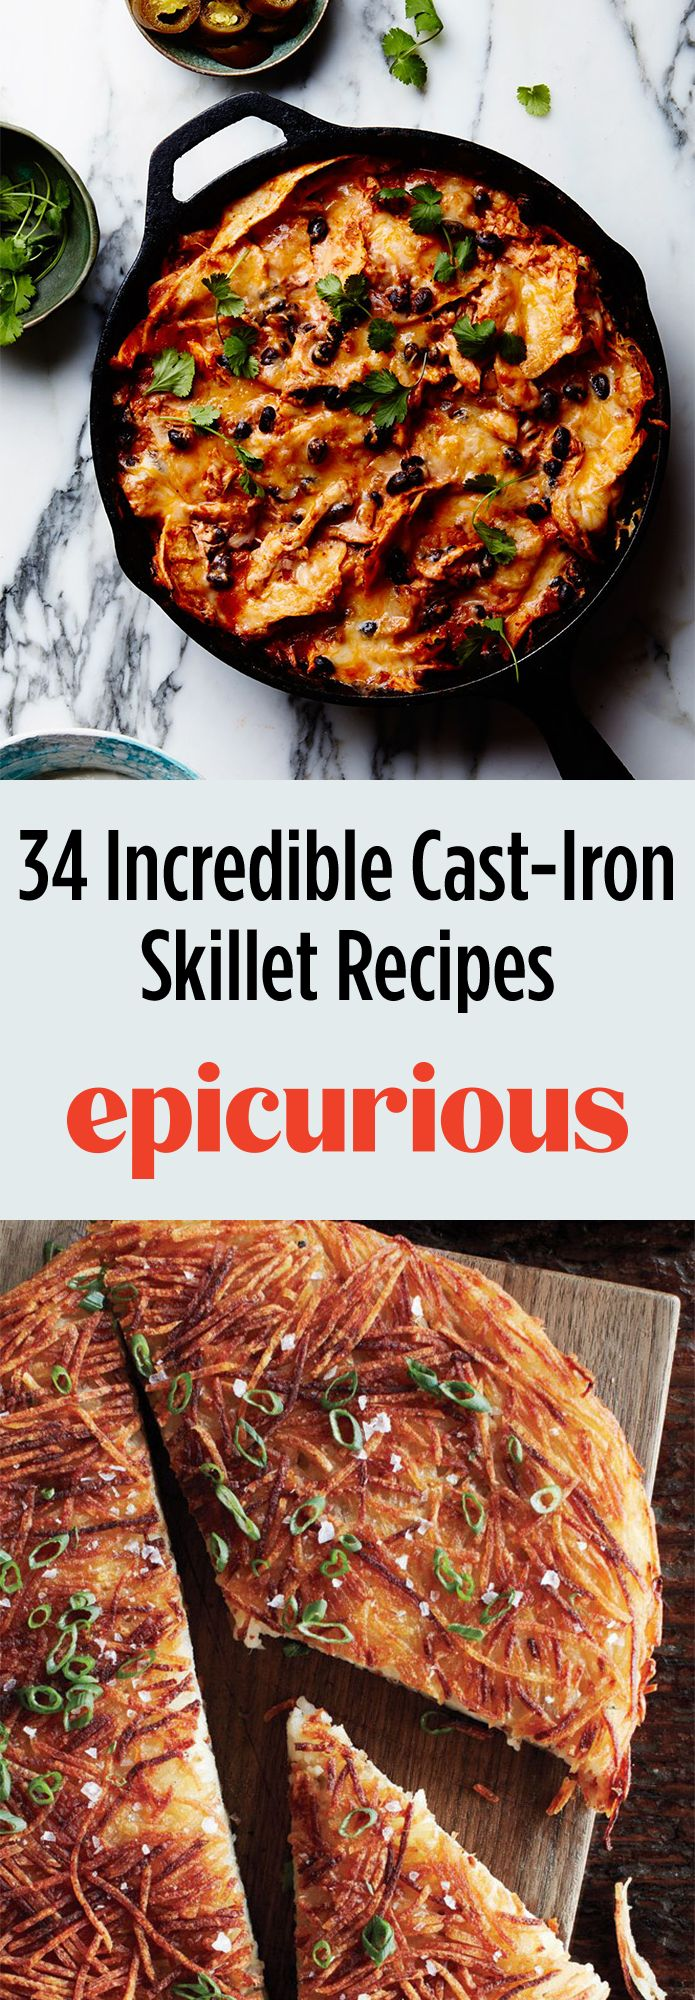 301 best dinner ideas images on pinterest apartments ballerinas 34 incredible cast iron skillet recipes epicurious forumfinder Gallery